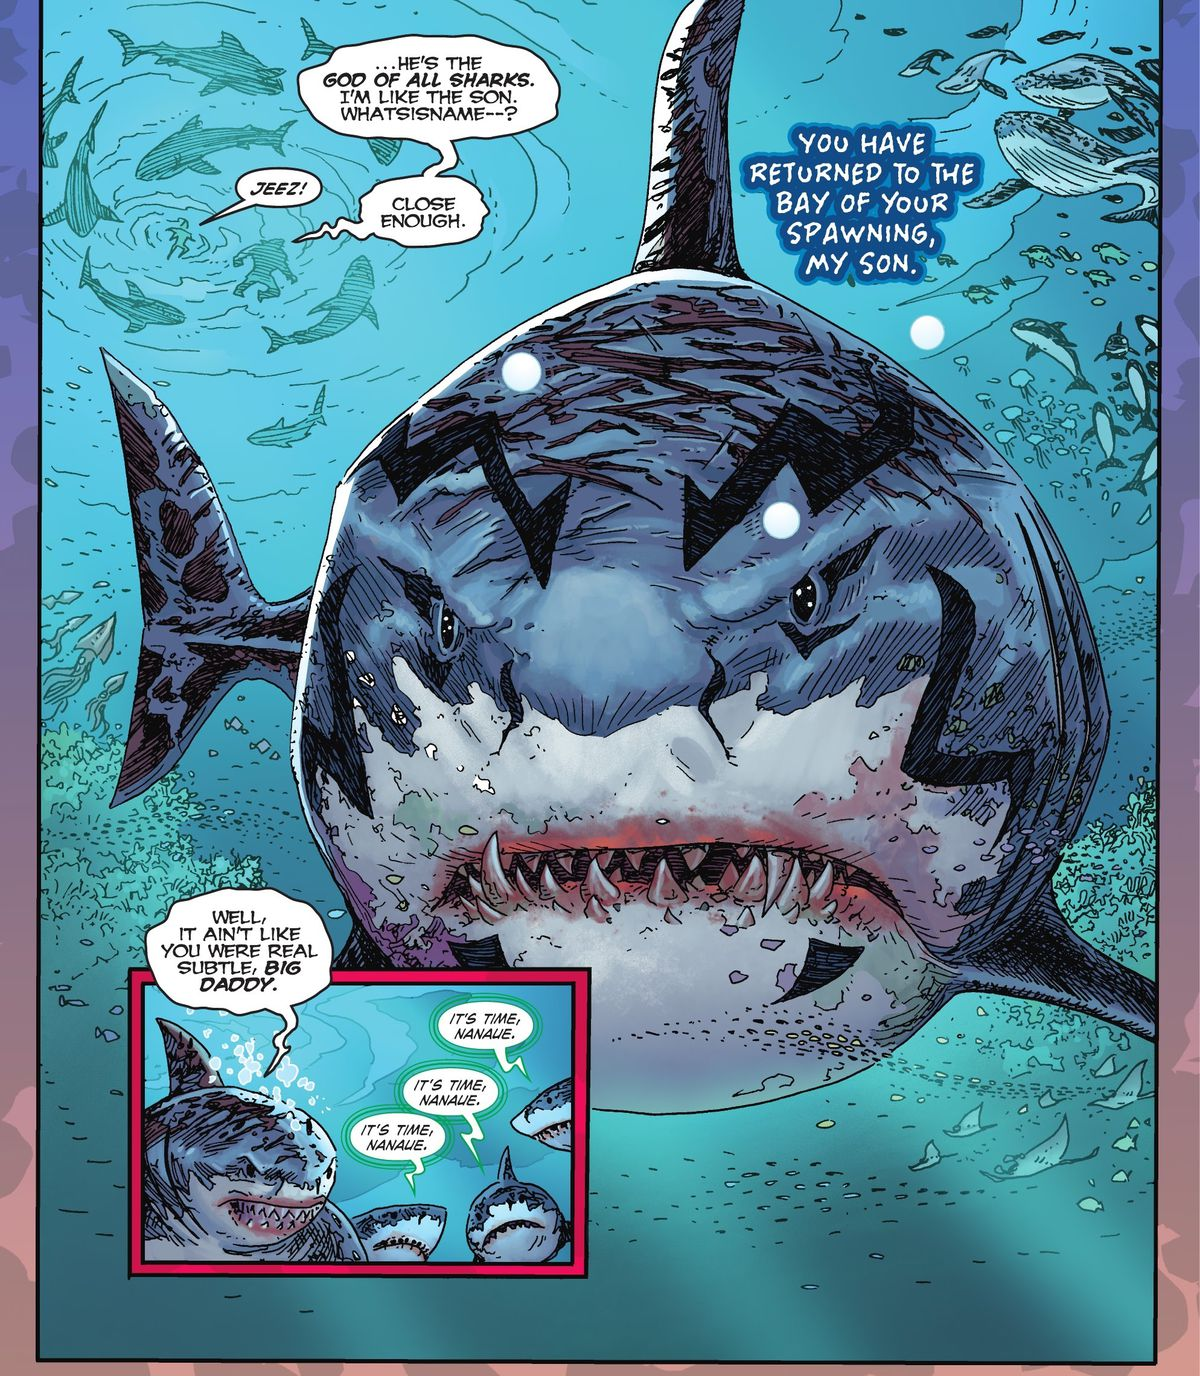 """""""He's the god of all sharks. I'm like the son. Whatsisname—?"""" says King Shark, floating above his father, a titan-sized great white shark god covered in scars and striped markings. """"Jeez!"""" says his human companion. """"Close enough,"""" he replies, in Suicide Squad: King Shark #1 (2021)."""